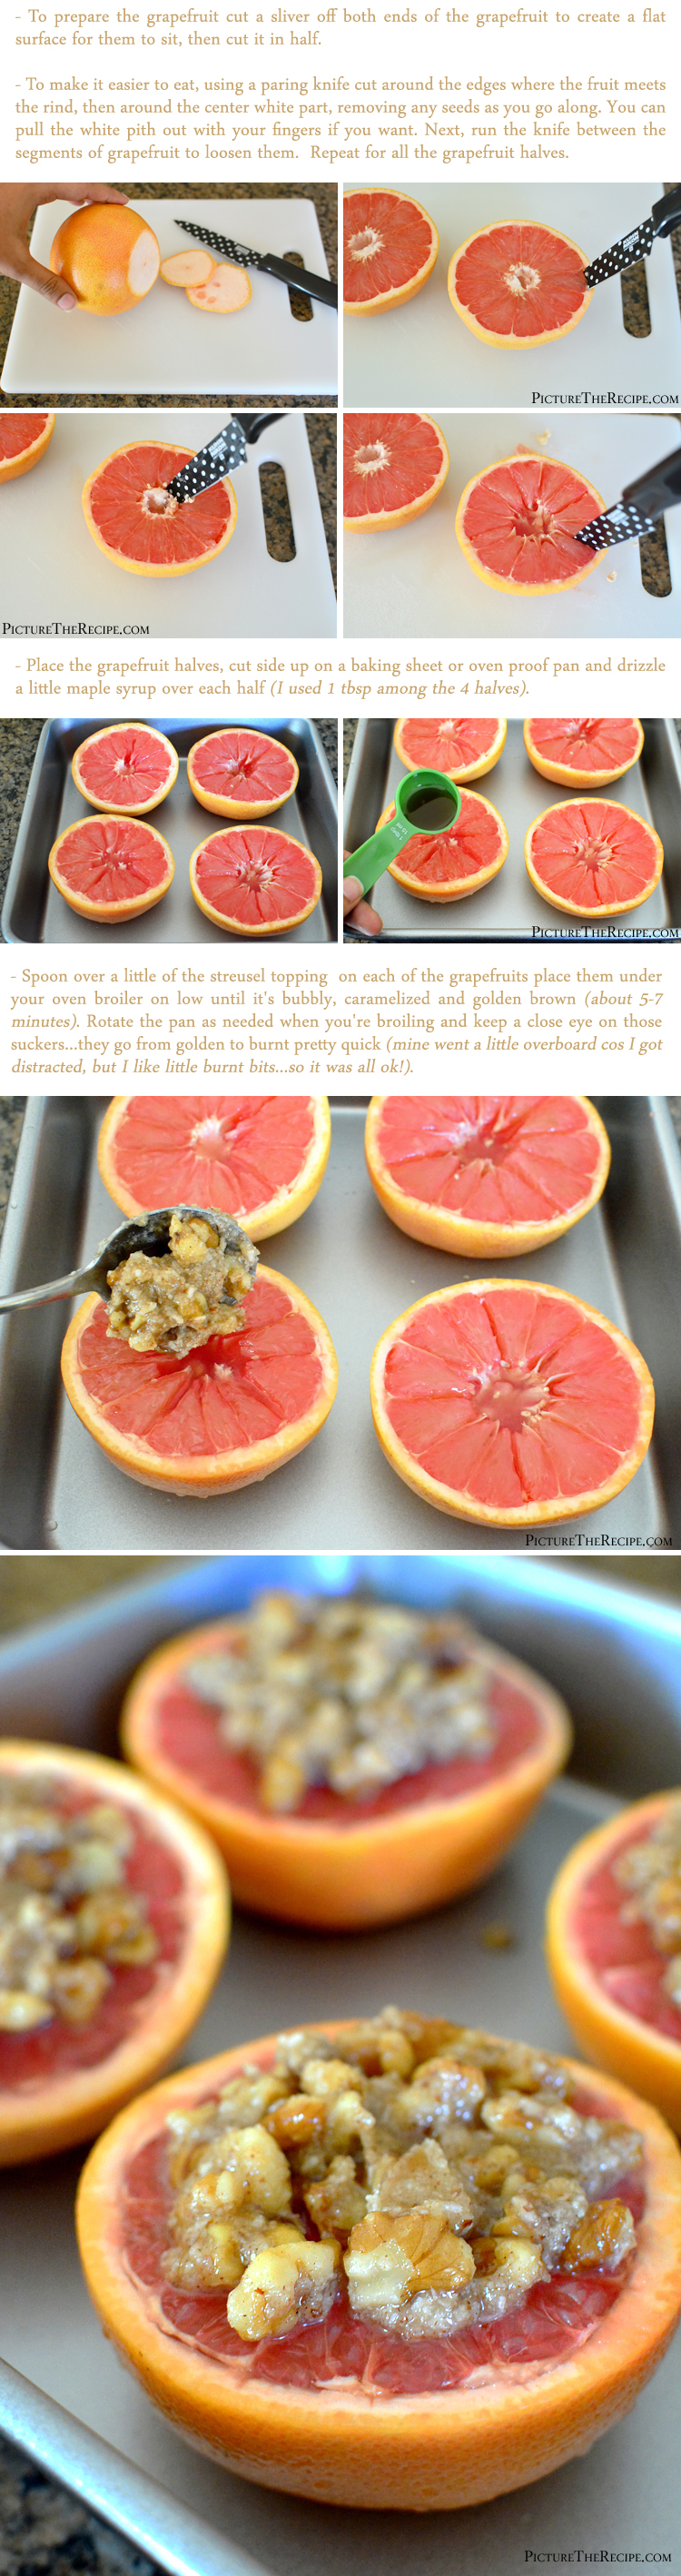 Broiled Grapefruit with Gluten-Free Streusel Recipe (Part-2)